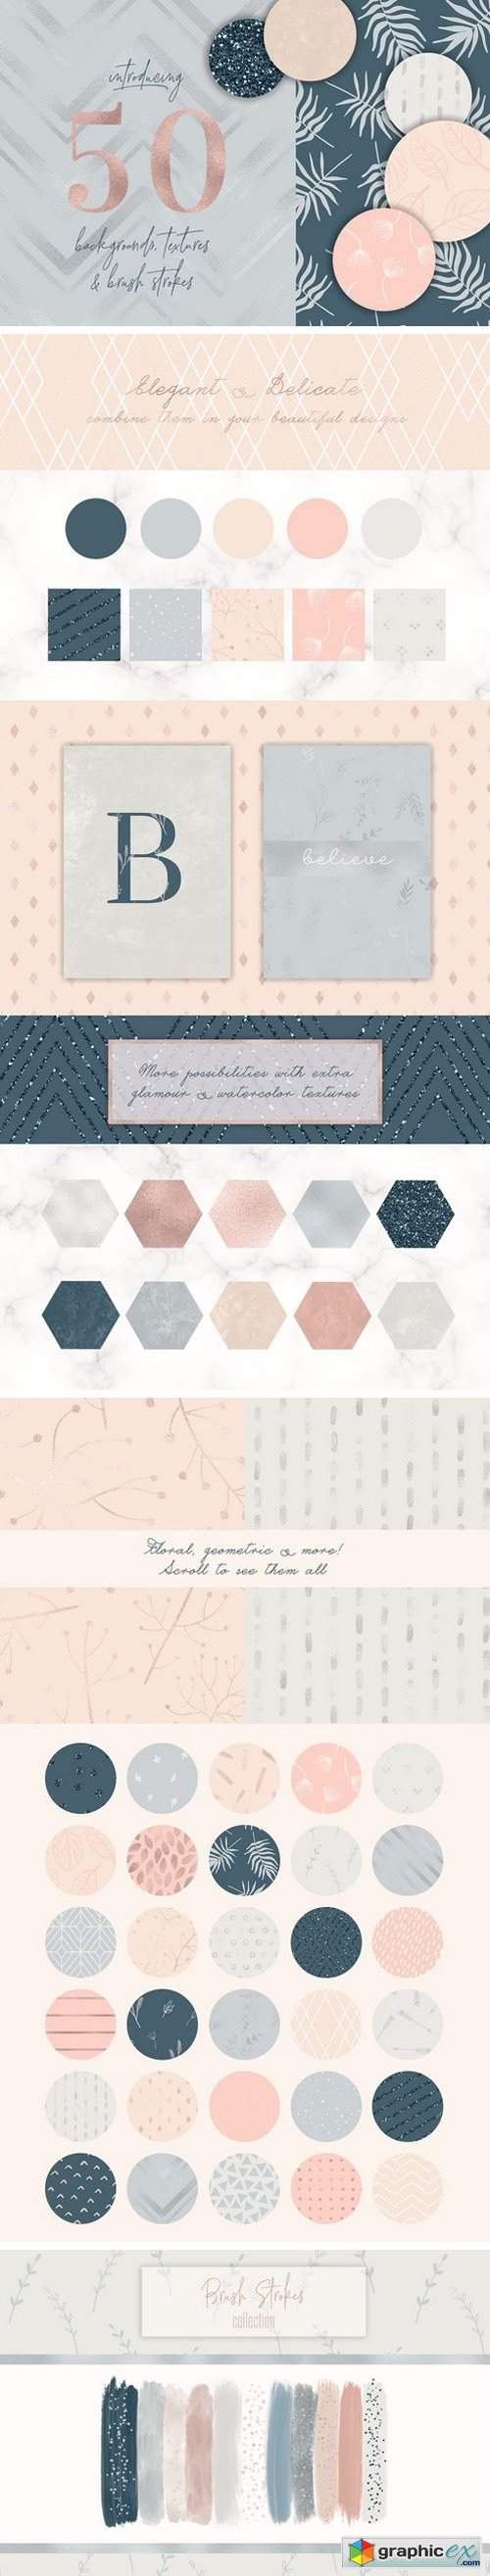 50 Elegant Backgrounds & Textures